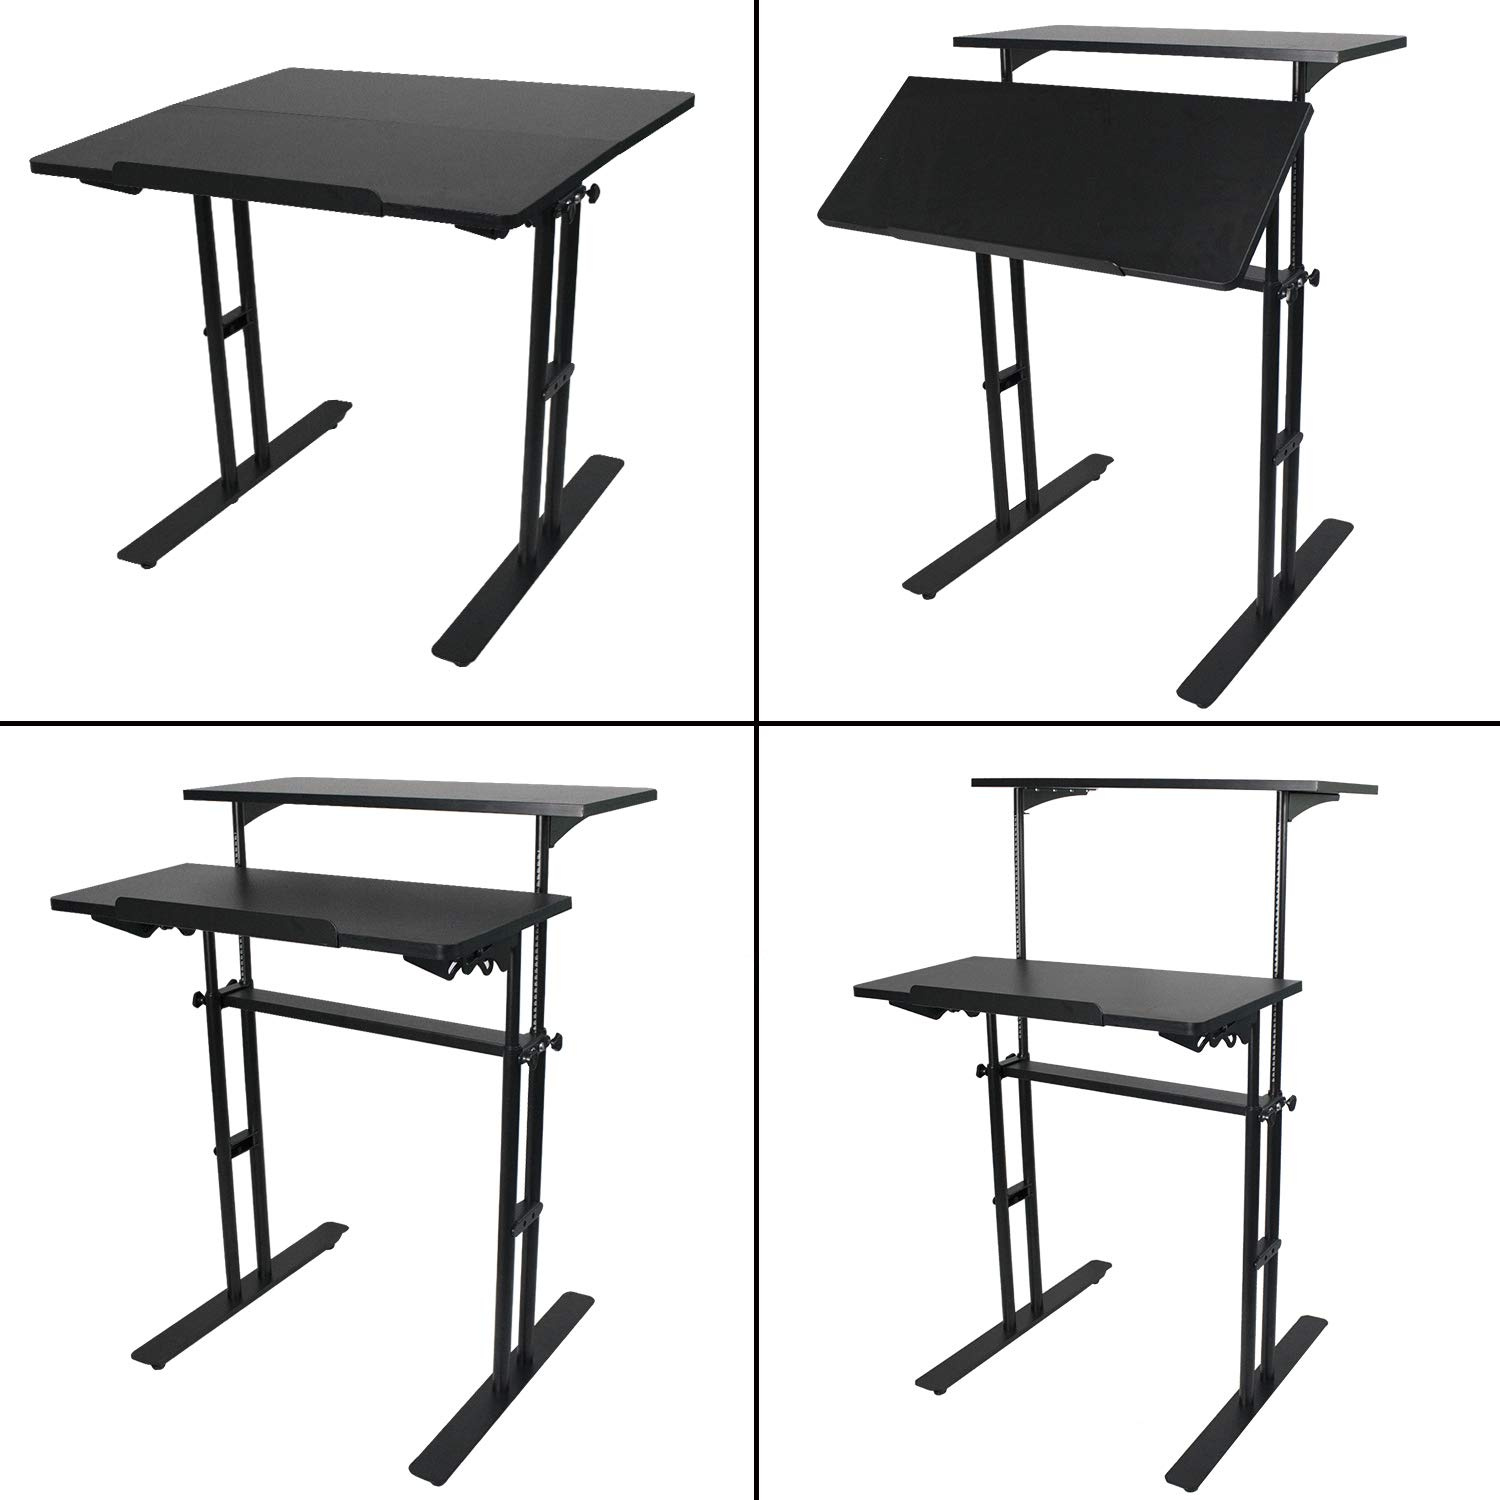 Heyesk Stand Up Desk Height Adjustable Home Office Desk with Standing (Black) by heyesk (Image #8)